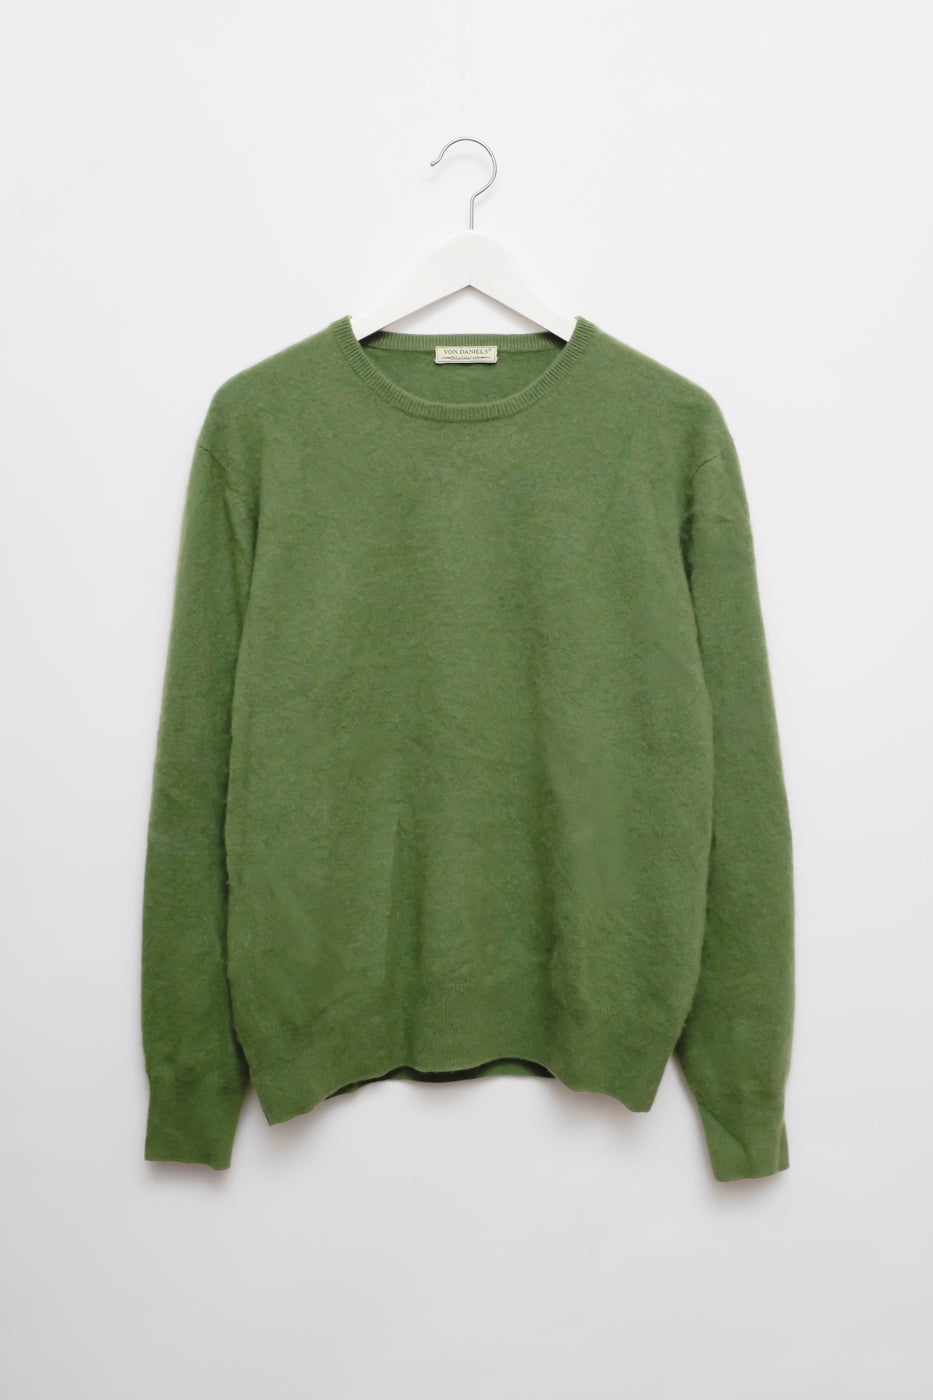 0005_GREEN CASHMERE KNIT